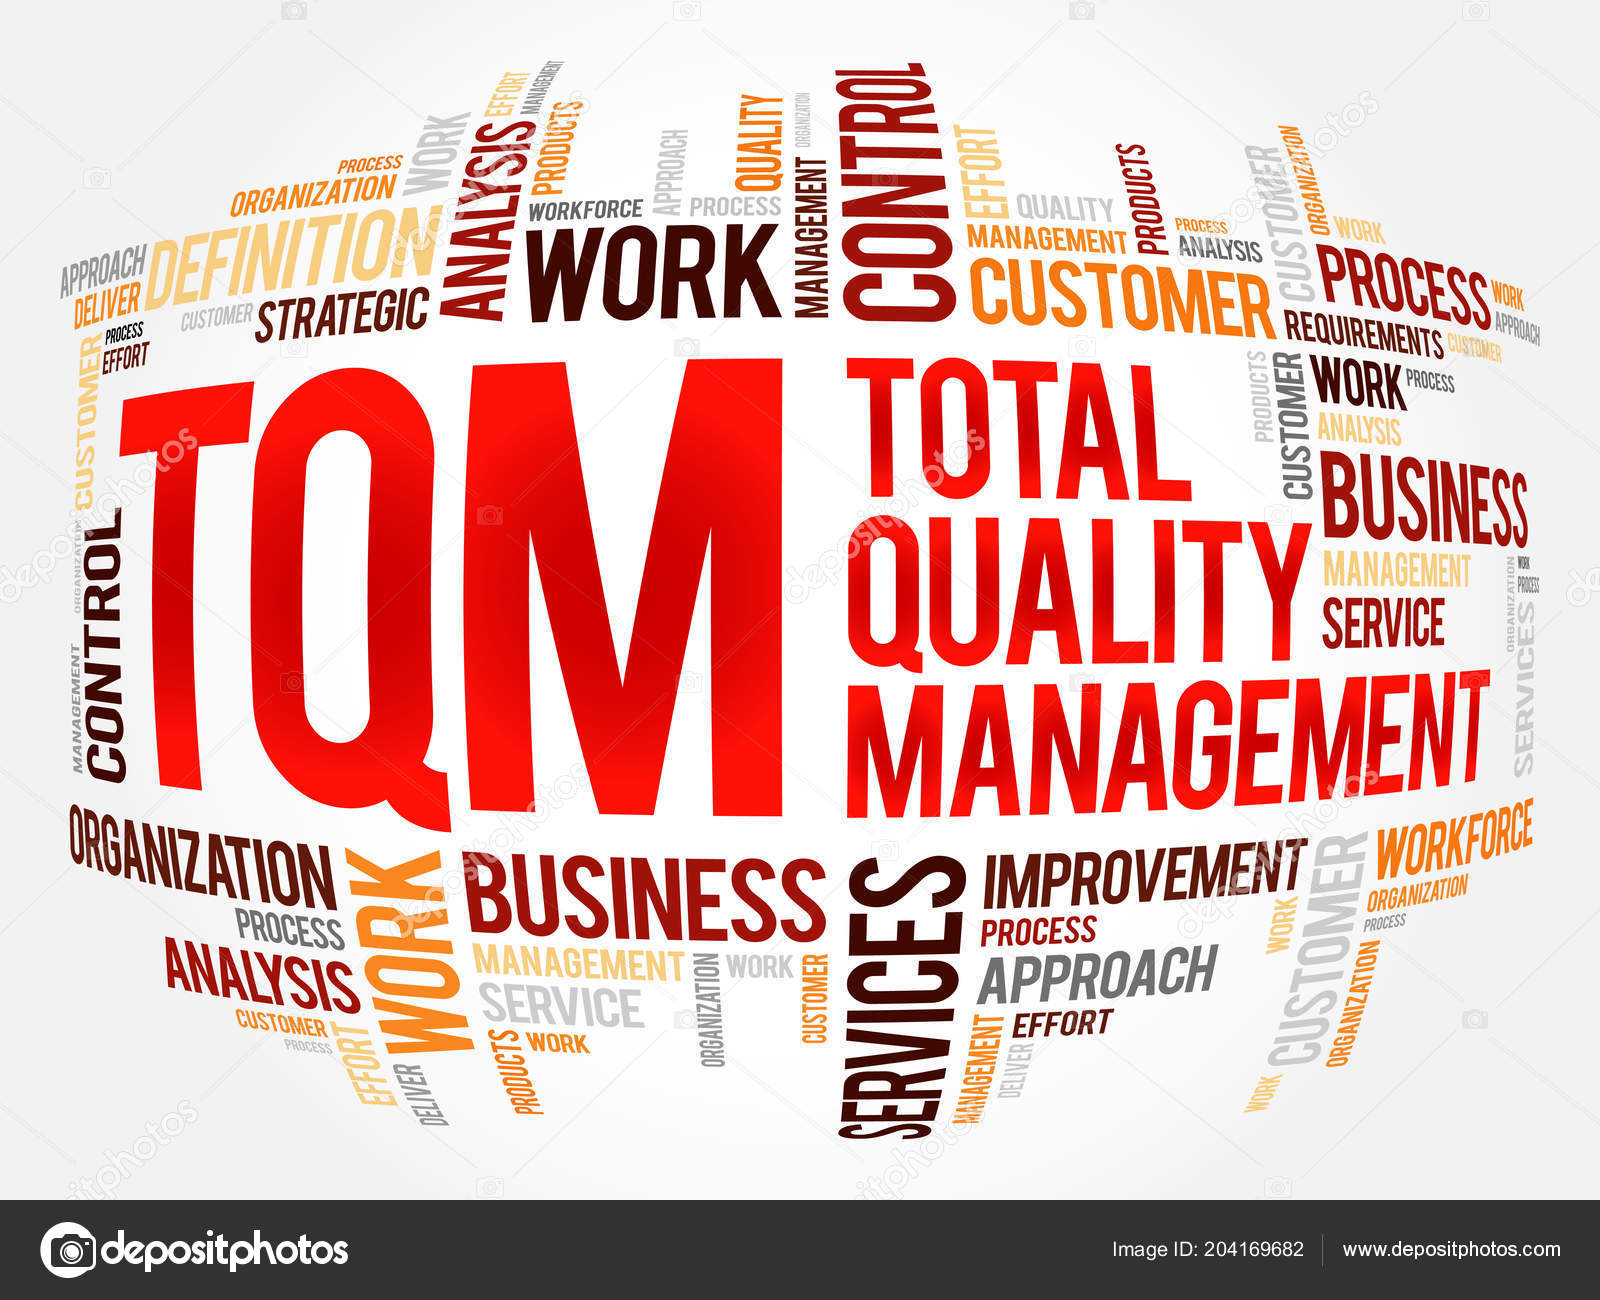 Tqm Total Quality Management Word Cloud Business Concept Background Vector Image By C Dizanna Vector Stock 204169682